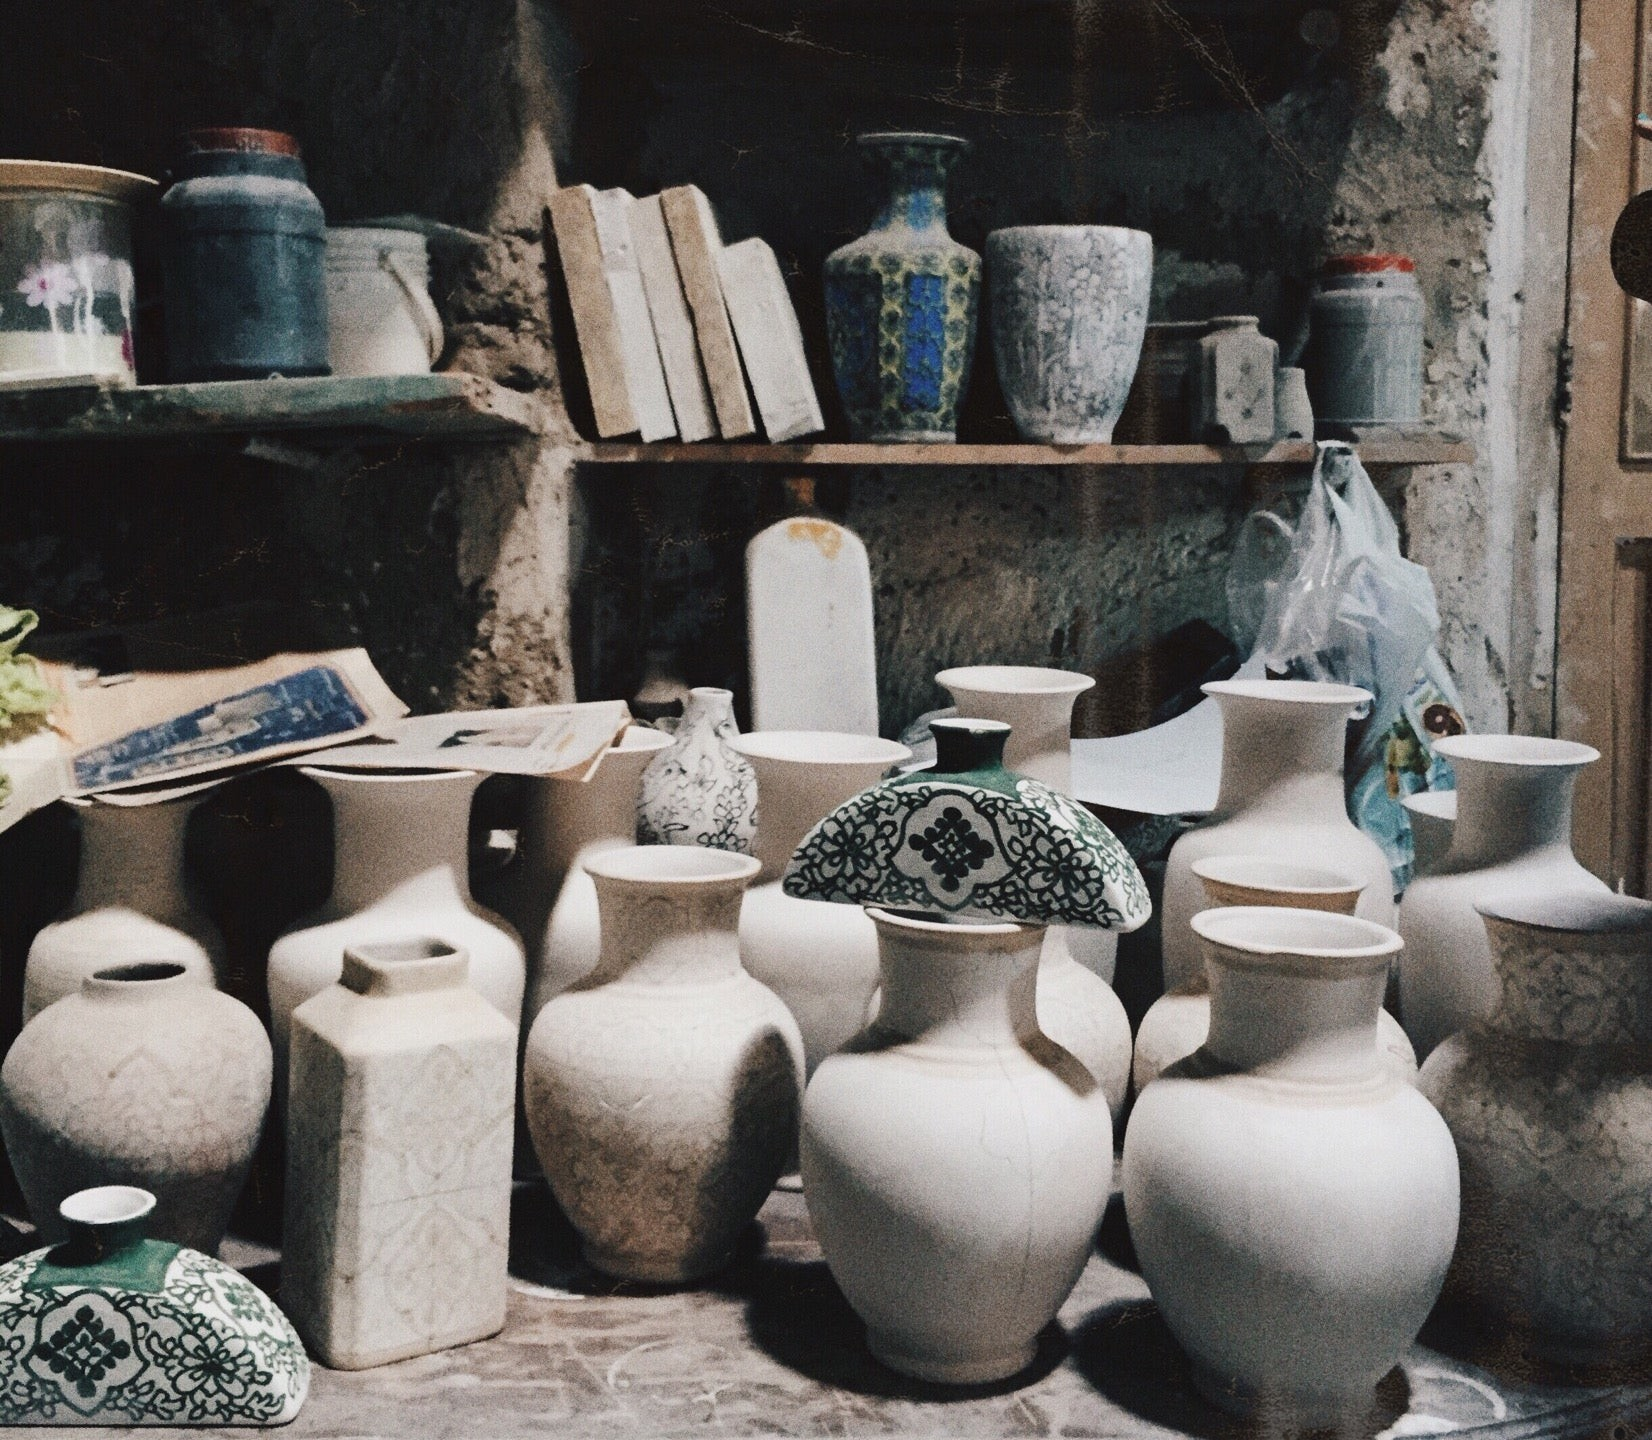 Abbas-Ebadi-Traditional-Ceramic-Workshop (2).jpg